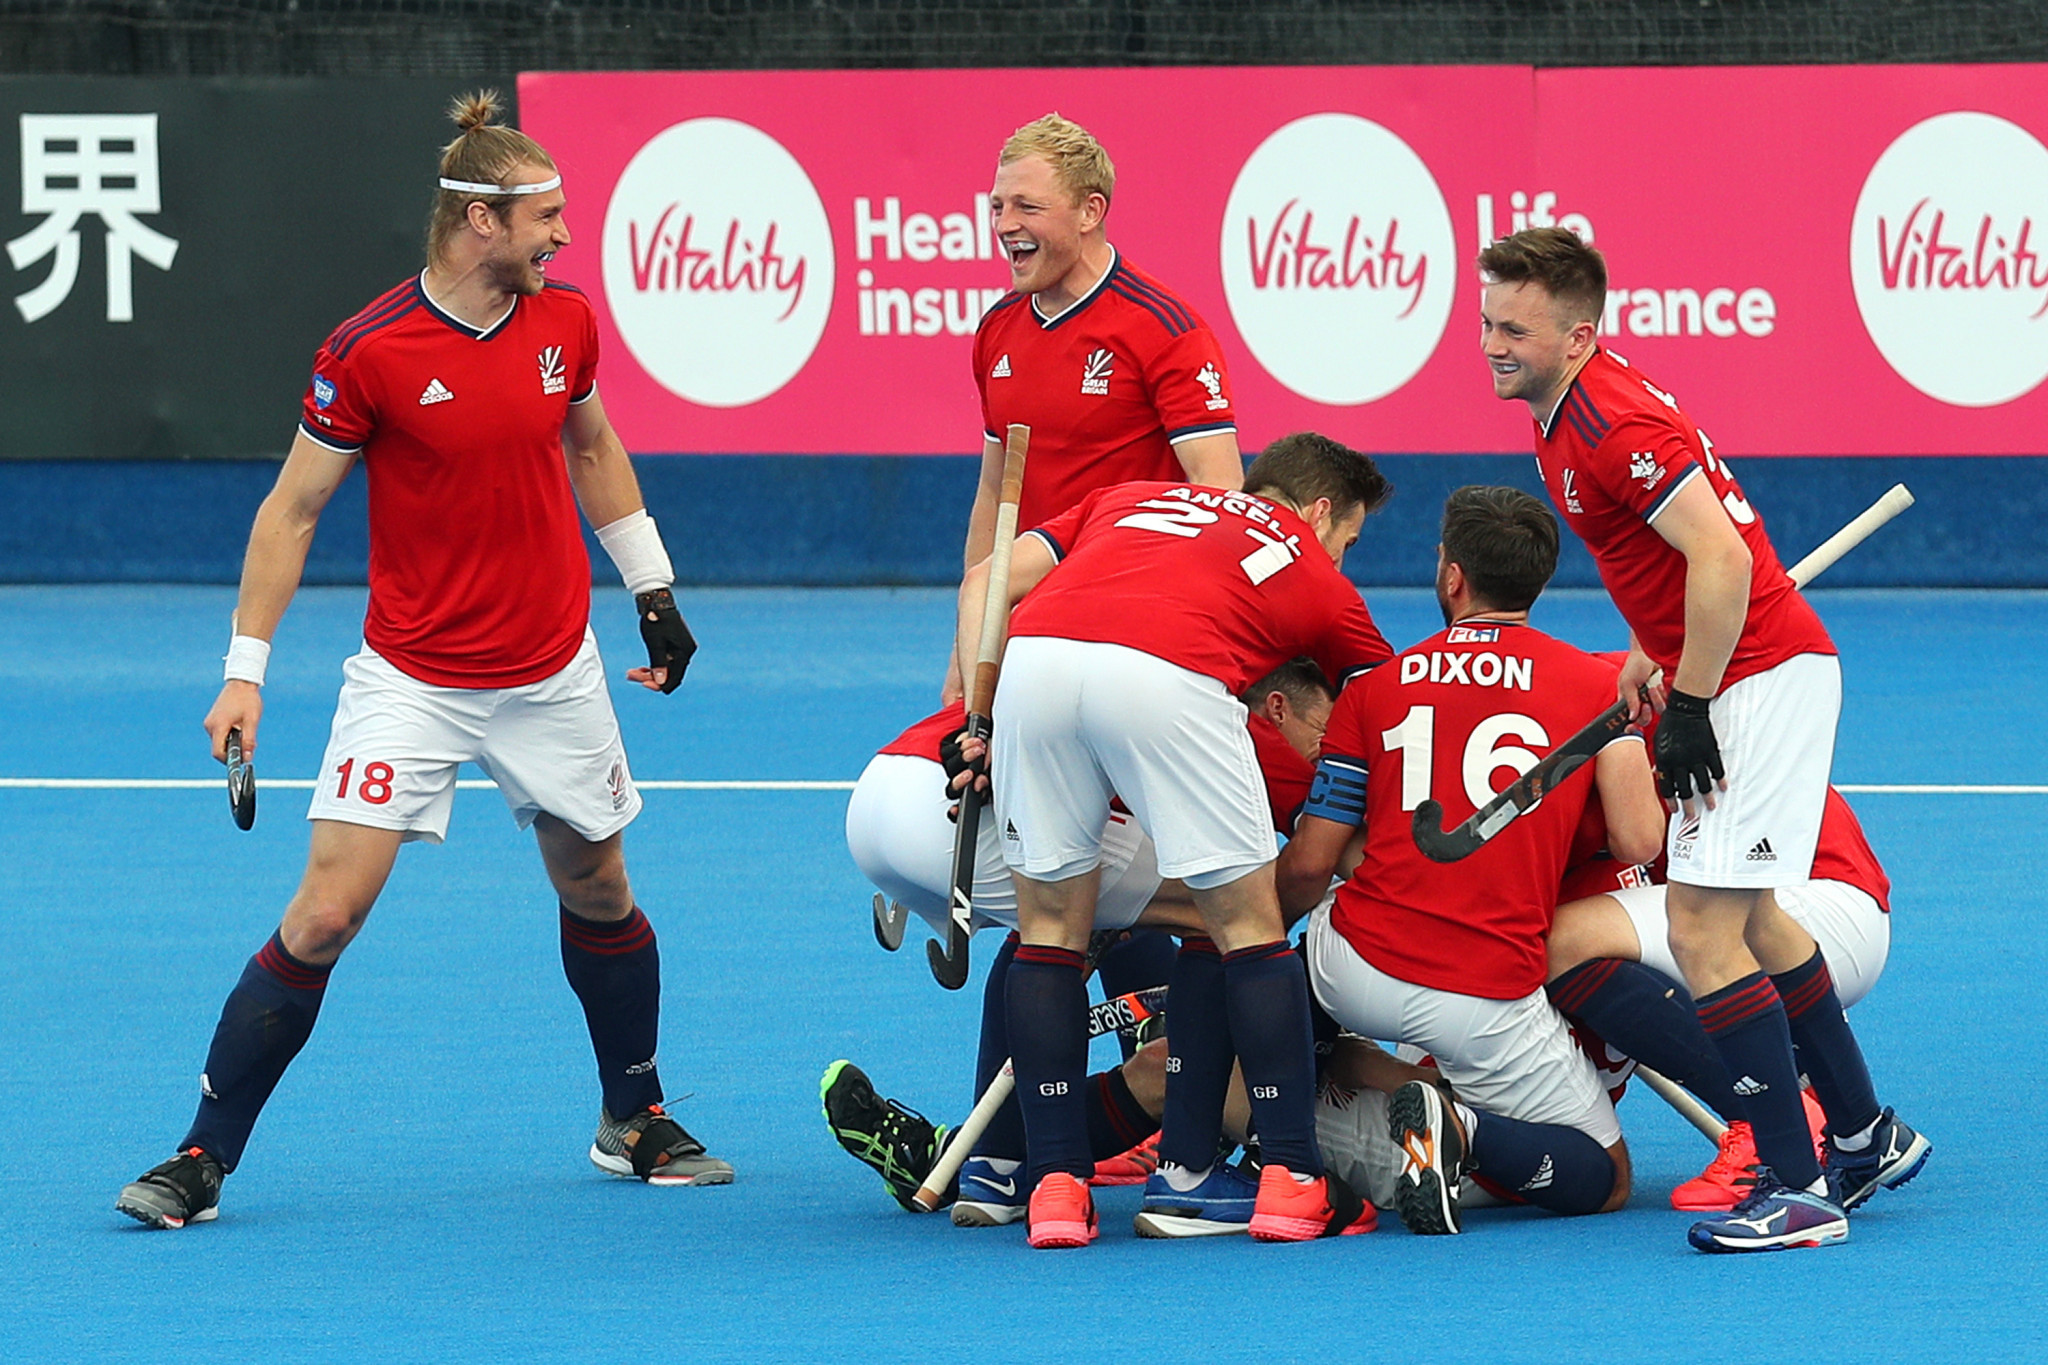 Bottom-of-the-table Britain stun Germany in men's Hockey Pro League